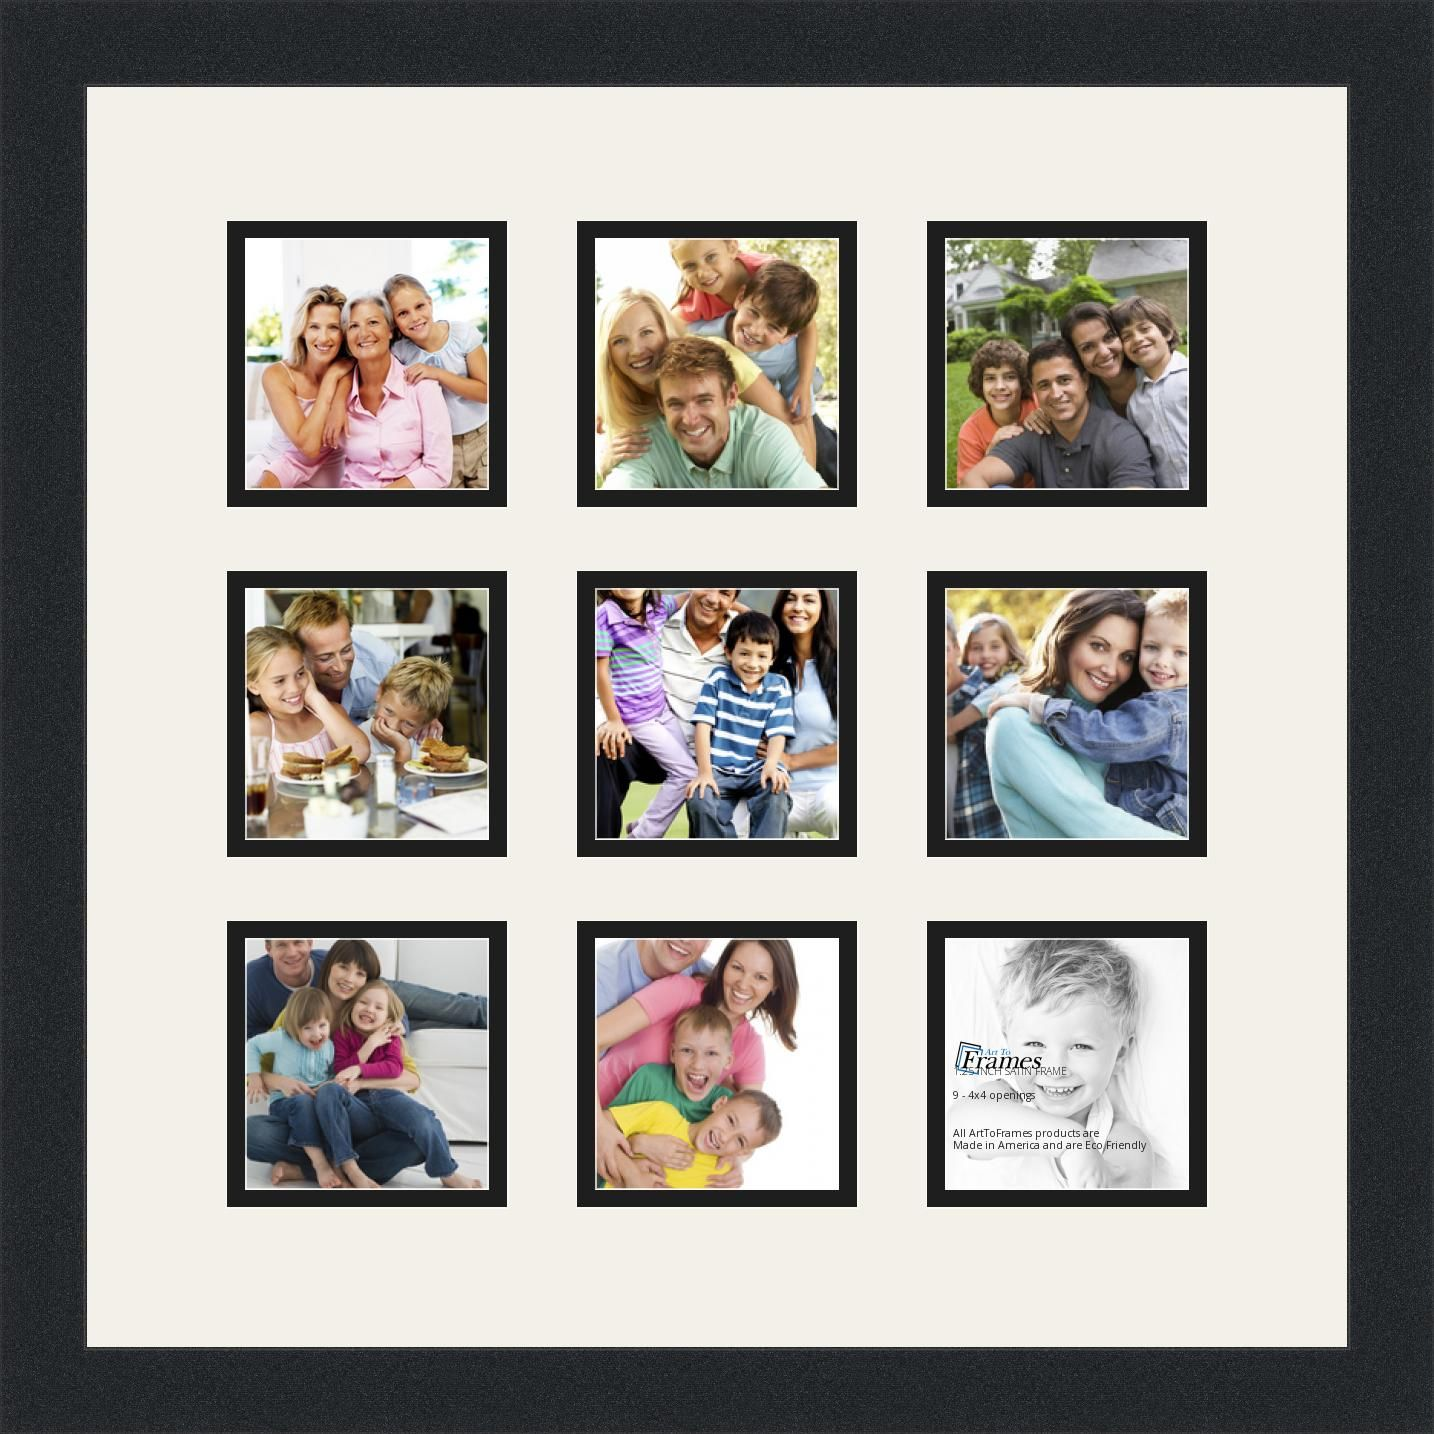 Picture collage frames for sale details about satin black picture collage frames for sale details about satin black collage picture frame with 9 jeuxipadfo Images